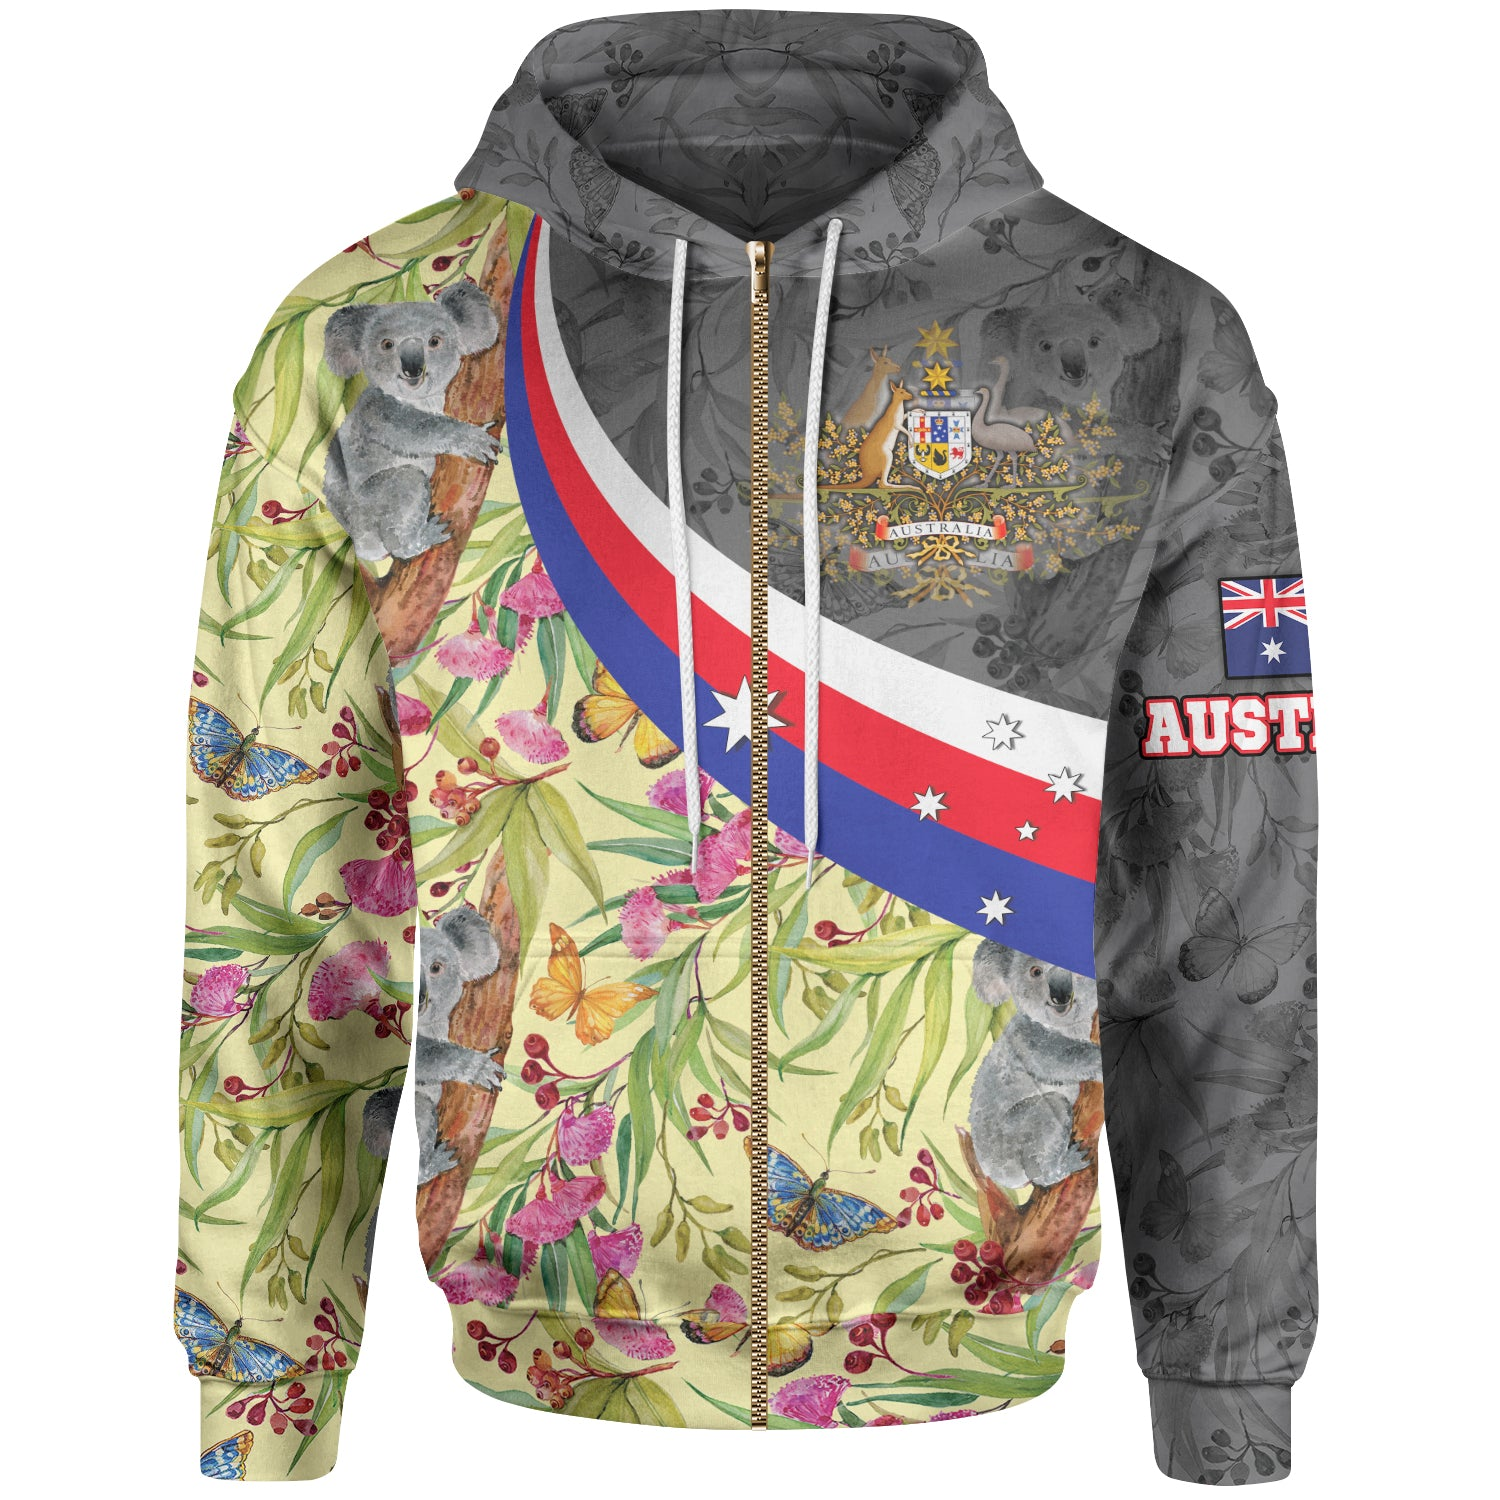 1stAustralia Zip-up Hoodie, Australia Coat Of Arms with Koala Patterns Ver01